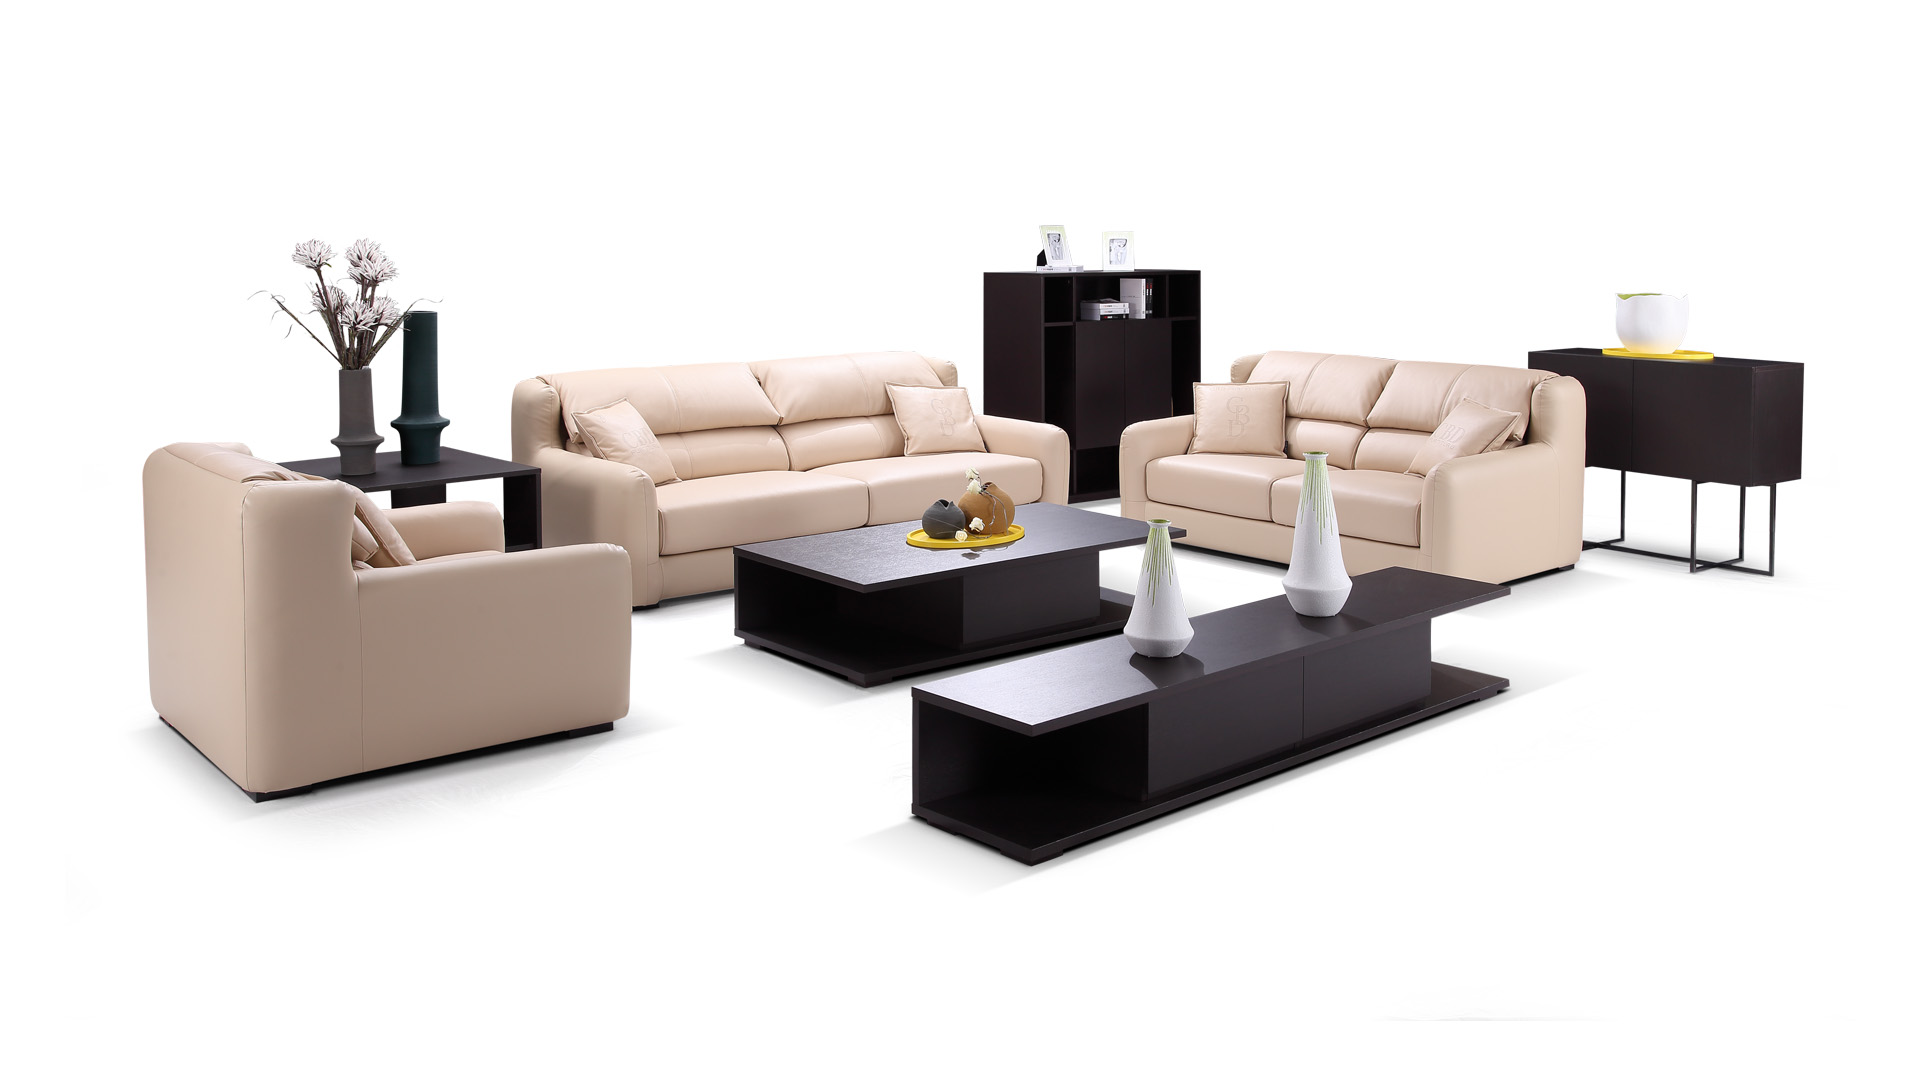 <p>Specification:</p><p>*1 SEATER:101*105*80mm</p><p>*2 SEATER:171*105*80mm</p><p>*3 SEATER:221*105*80mm</p>